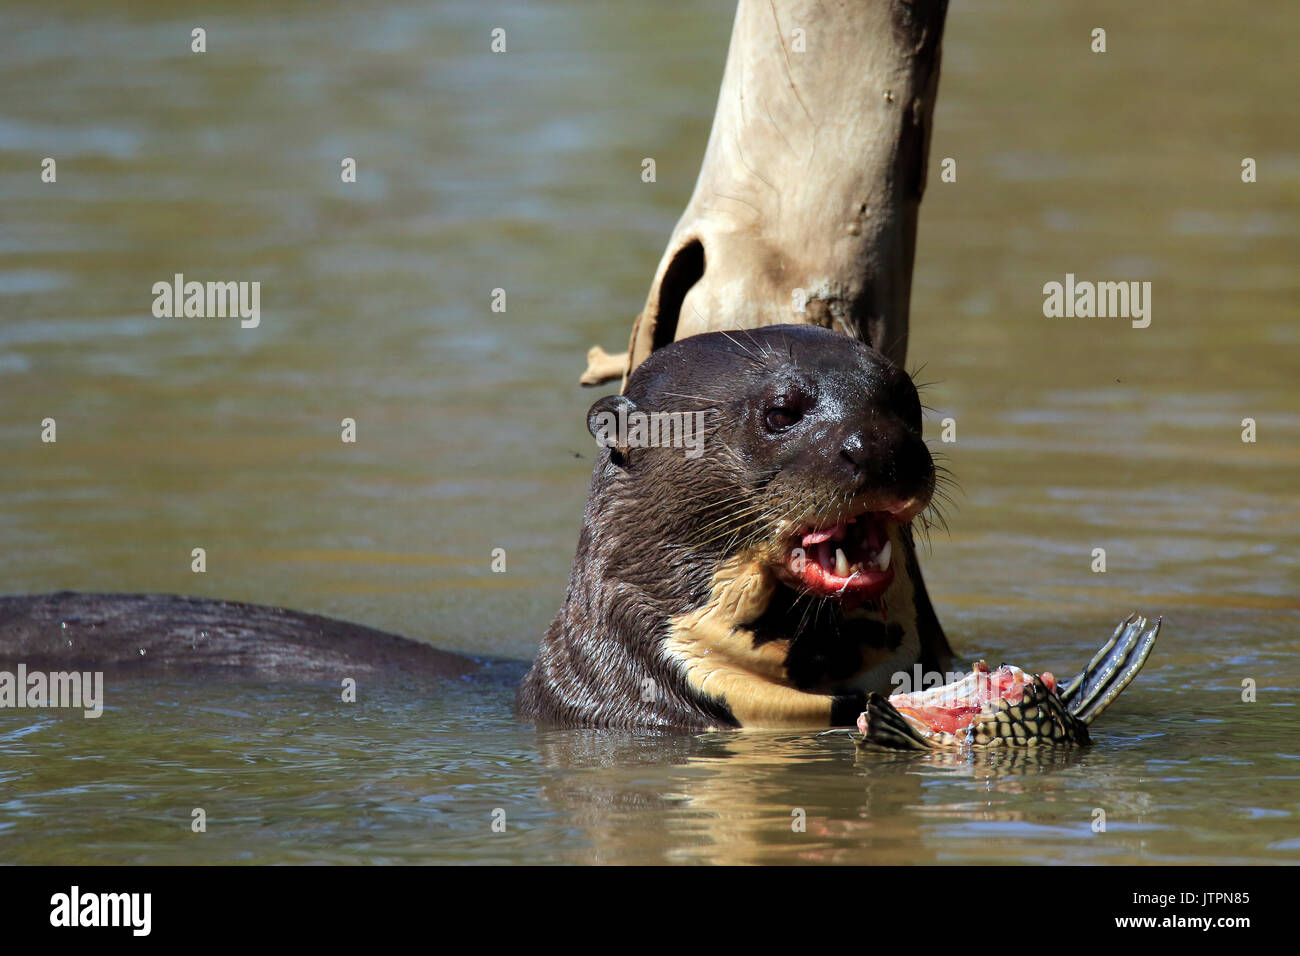 Giant Otter Feeding in the River. Pantanal, Brazil - Stock Image